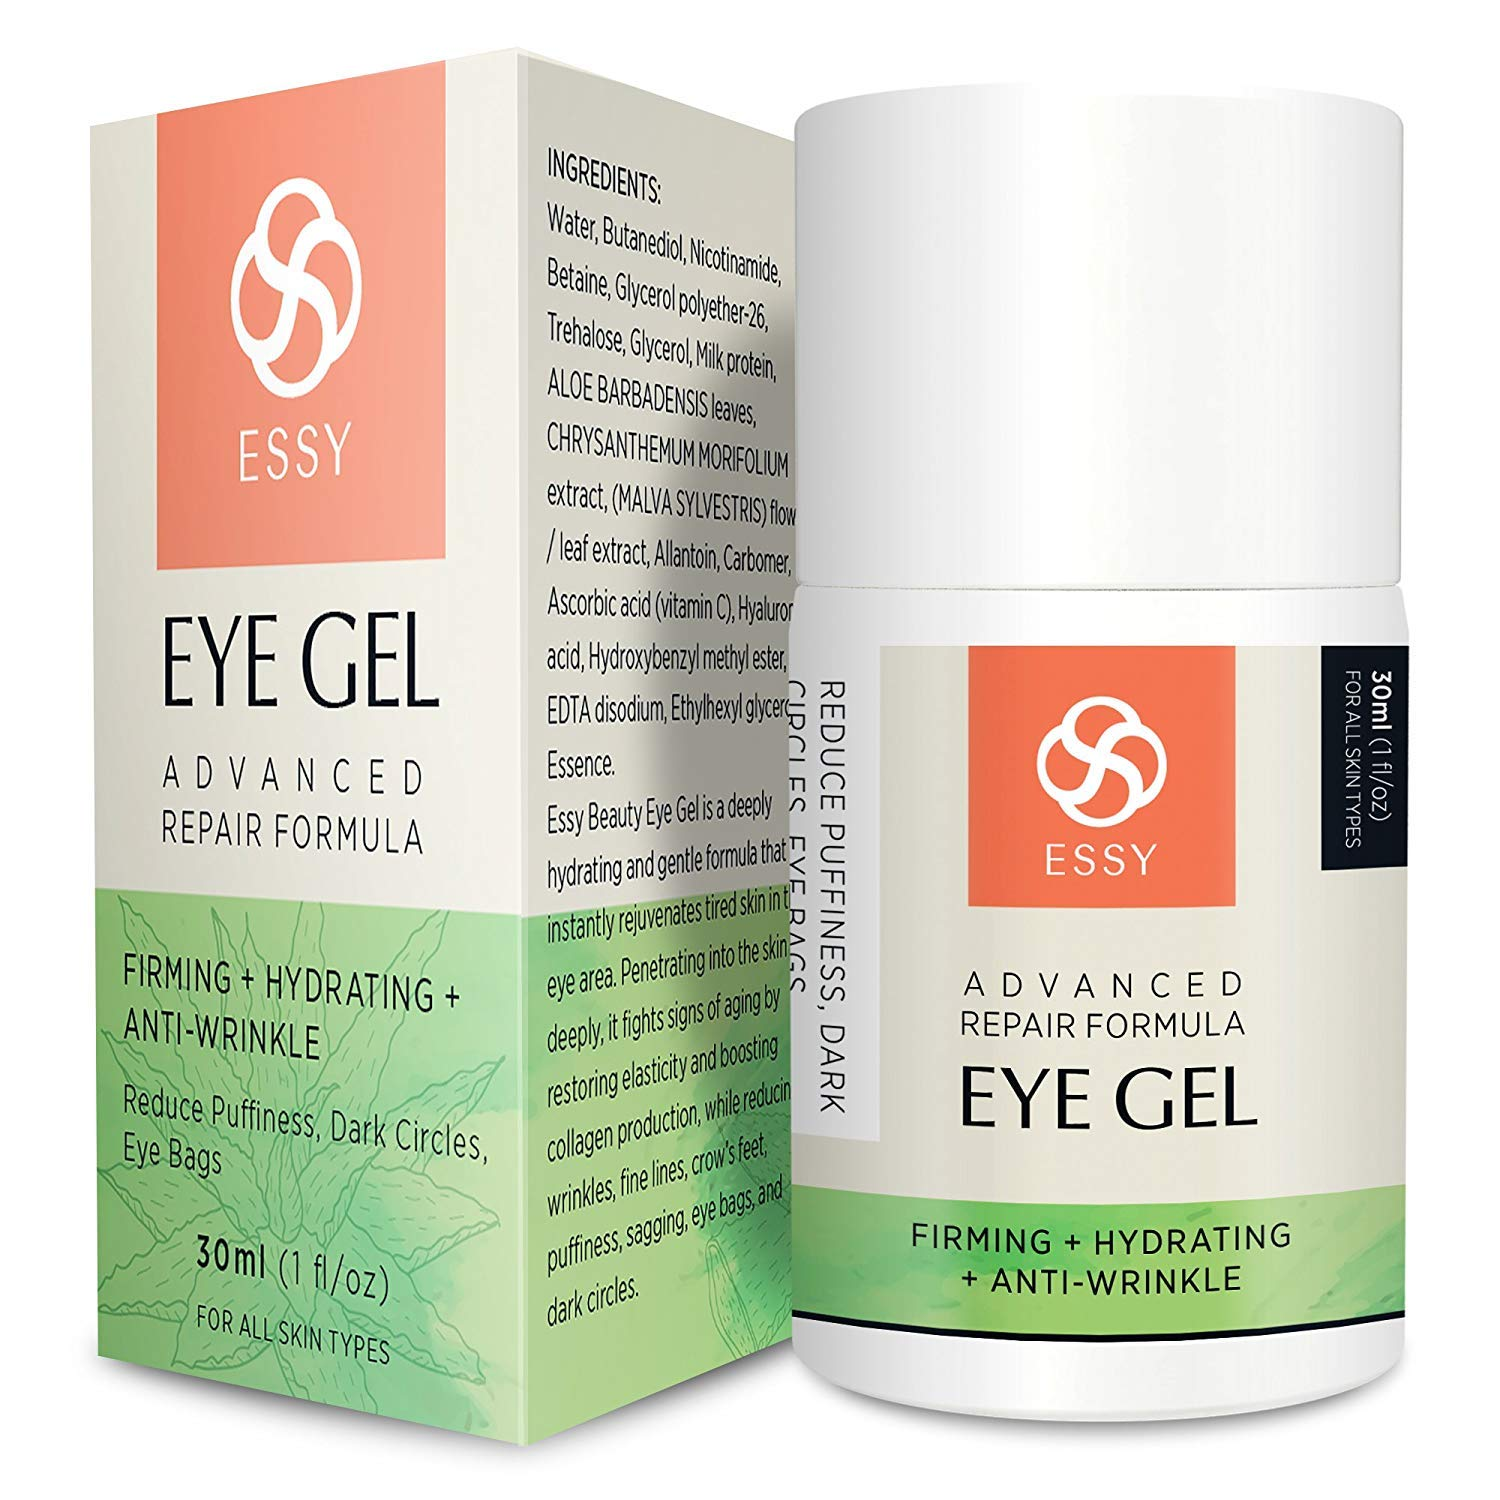 Eye Gel for Dark Circles, Puffiness, Wrinkles and Bags,Fine Lines. - The Most Effective Anti-Aging Eye Gel Under and around Eyes- 1 fl OZ by Essy naturals